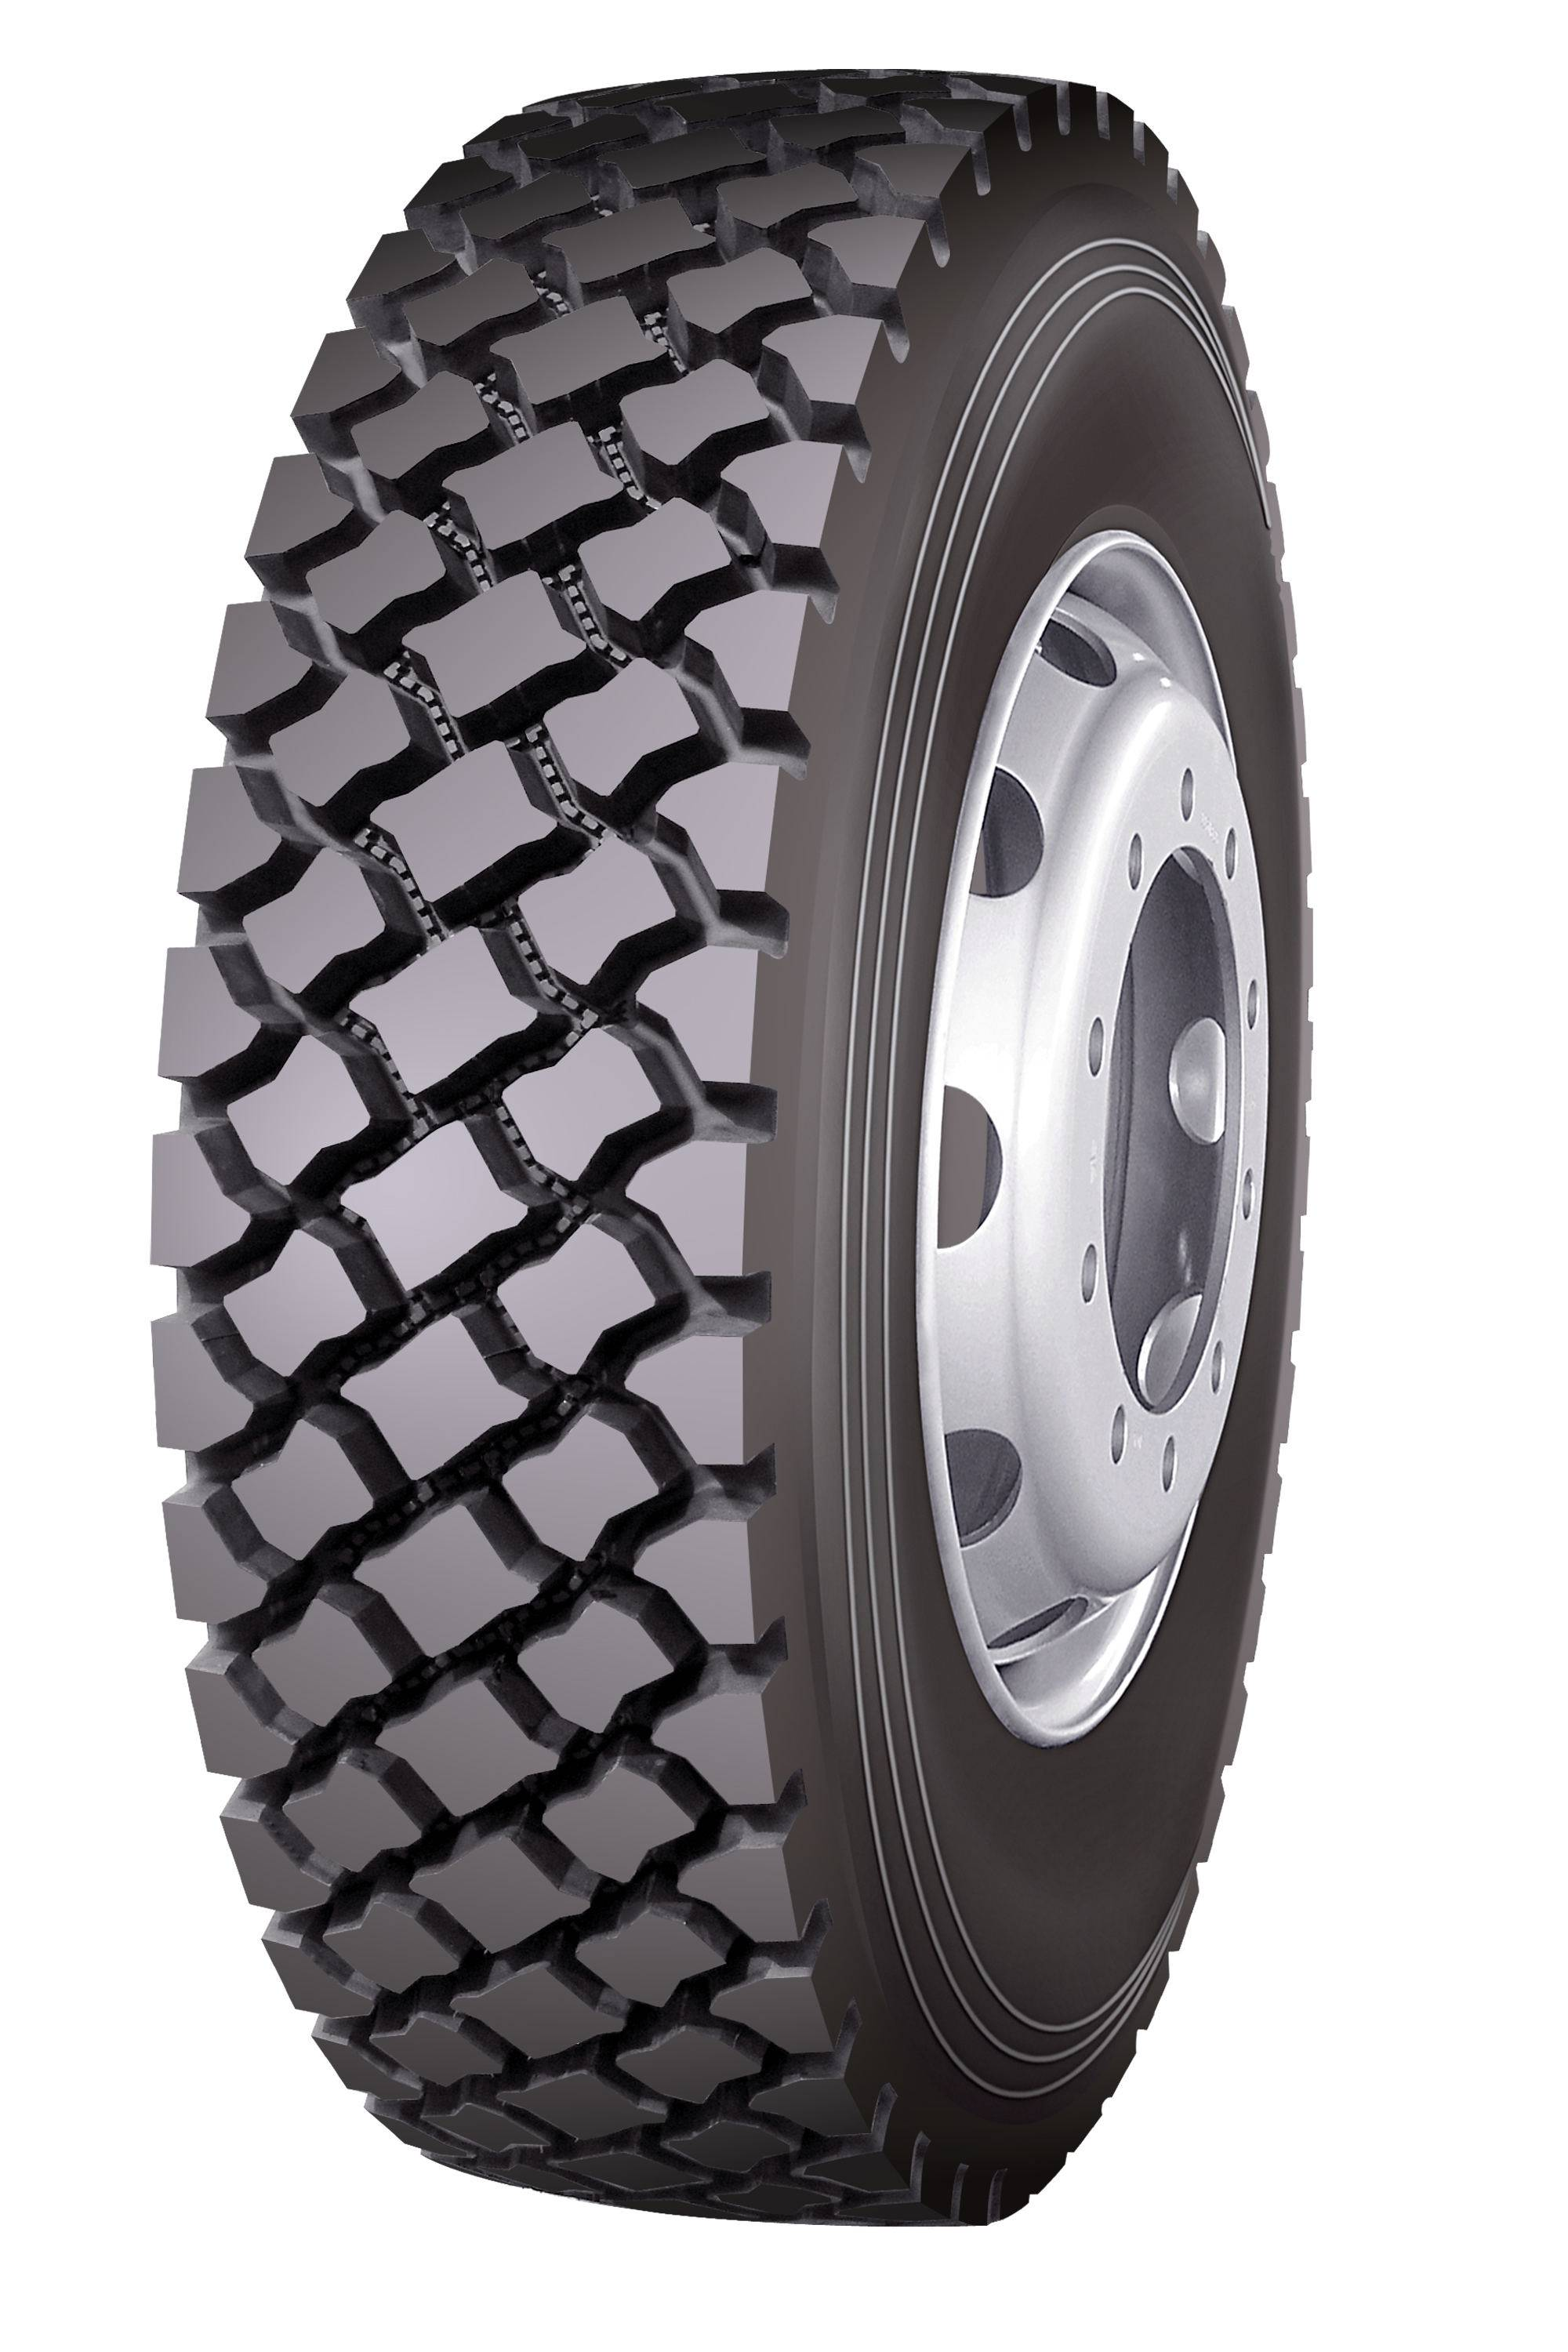 china high quality radial truck tyre 11R22.5 295/80R22.5 315/80R22.5 385/65R22.5 12R22.5 13R22.5 120